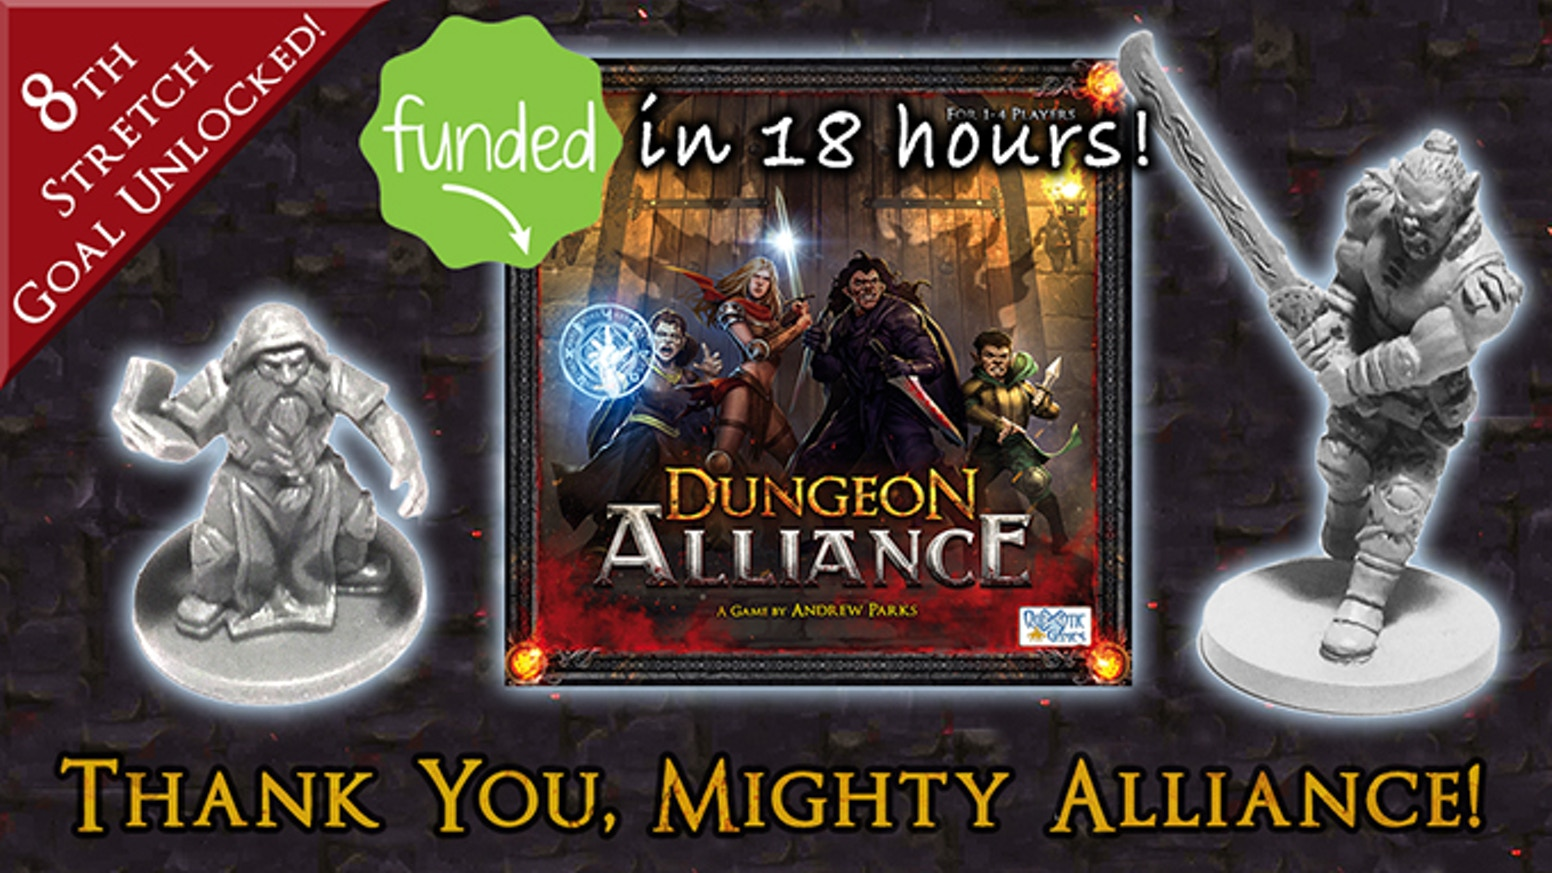 Dungeon Alliance is a deck-building, dungeon crawling miniatures adventure game.  Second Printing + New Adventure Packs!